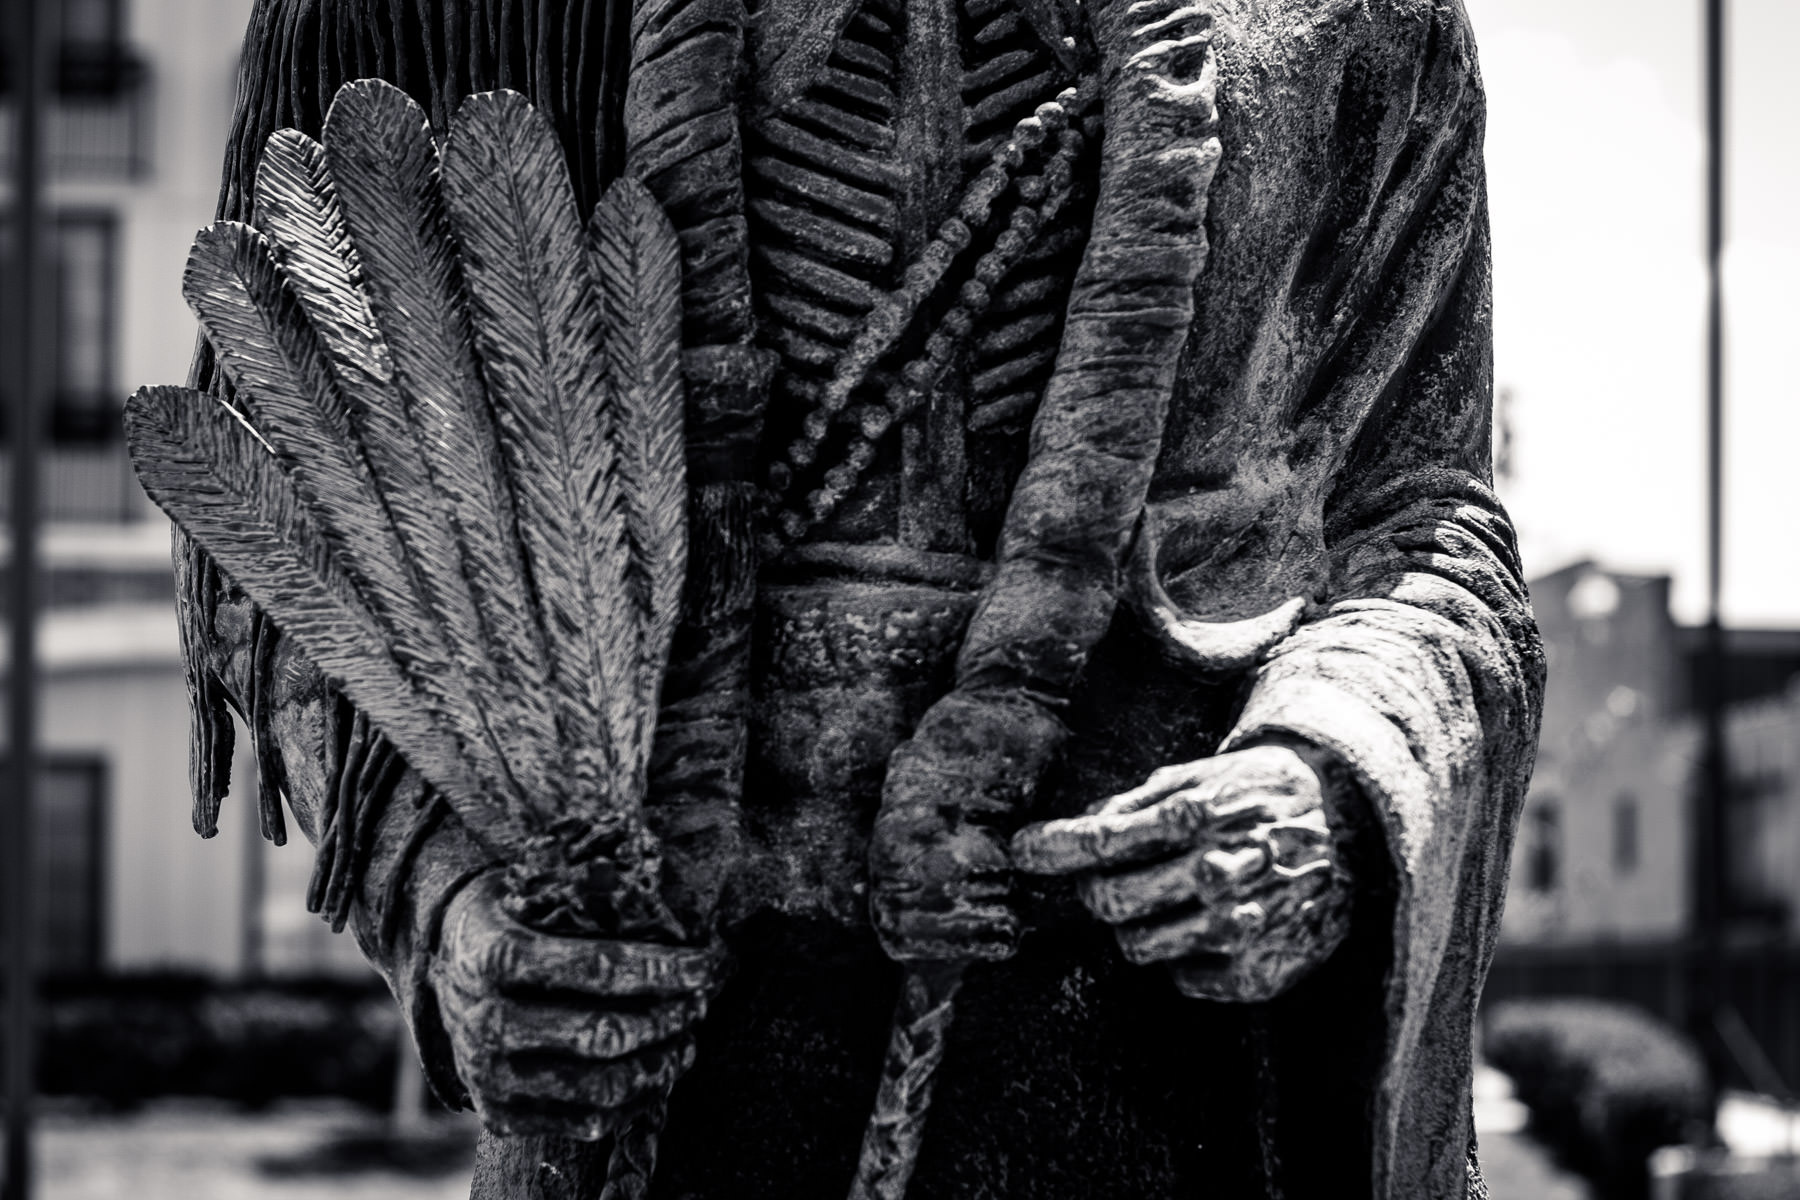 Detail of a statue on a Native American in Fort Worth, Texas' Stockyards Historical District.